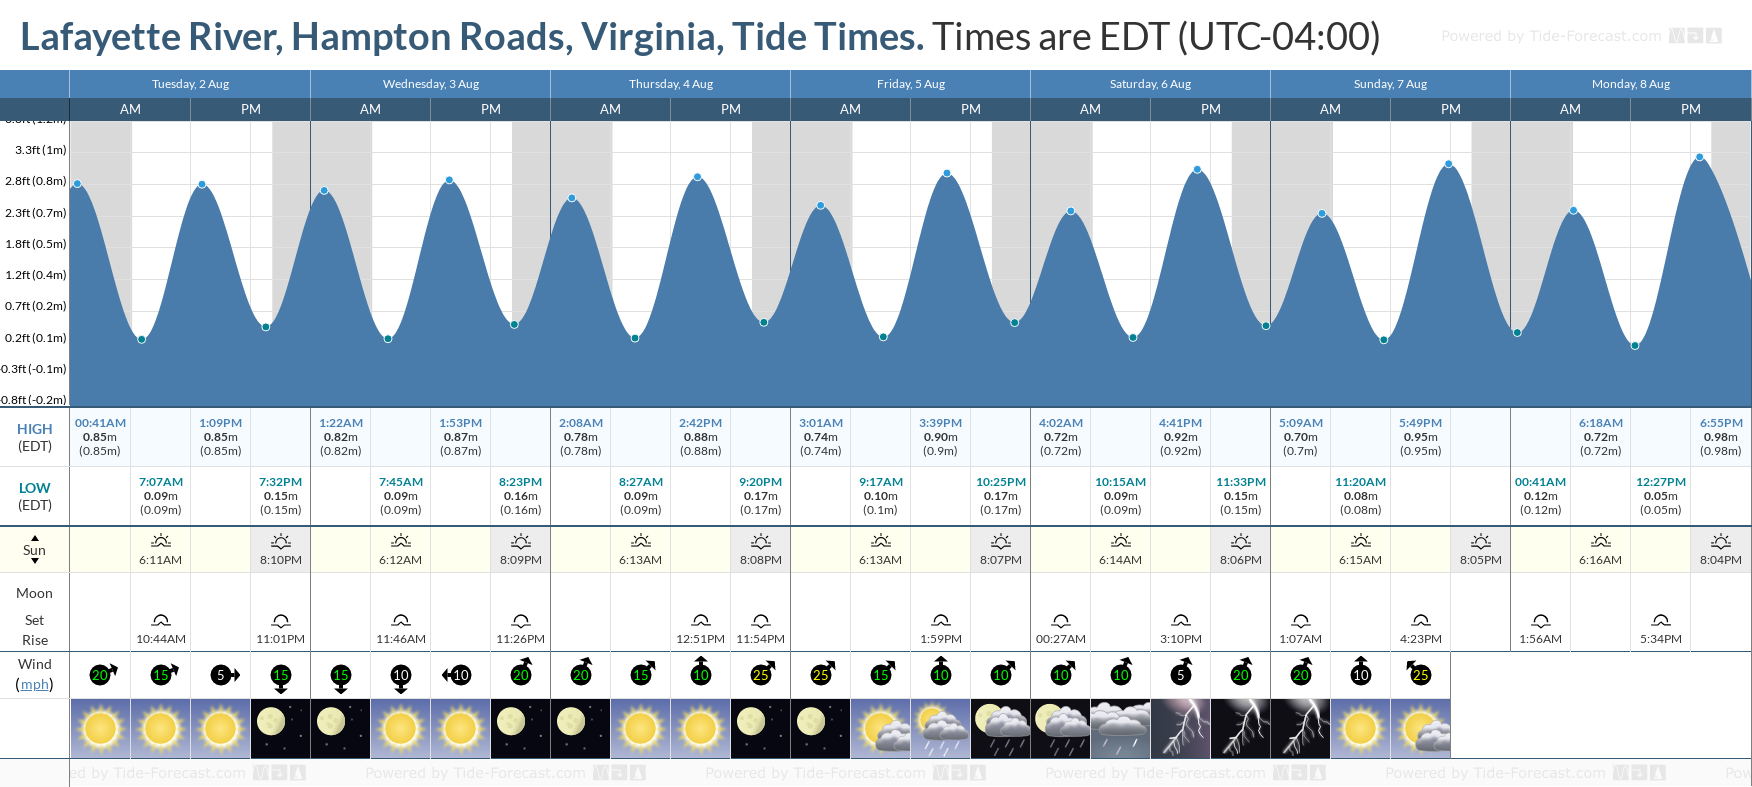 Lafayette River, Hampton Roads, Virginia Tide Chart including high and low tide tide times for the next 7 days